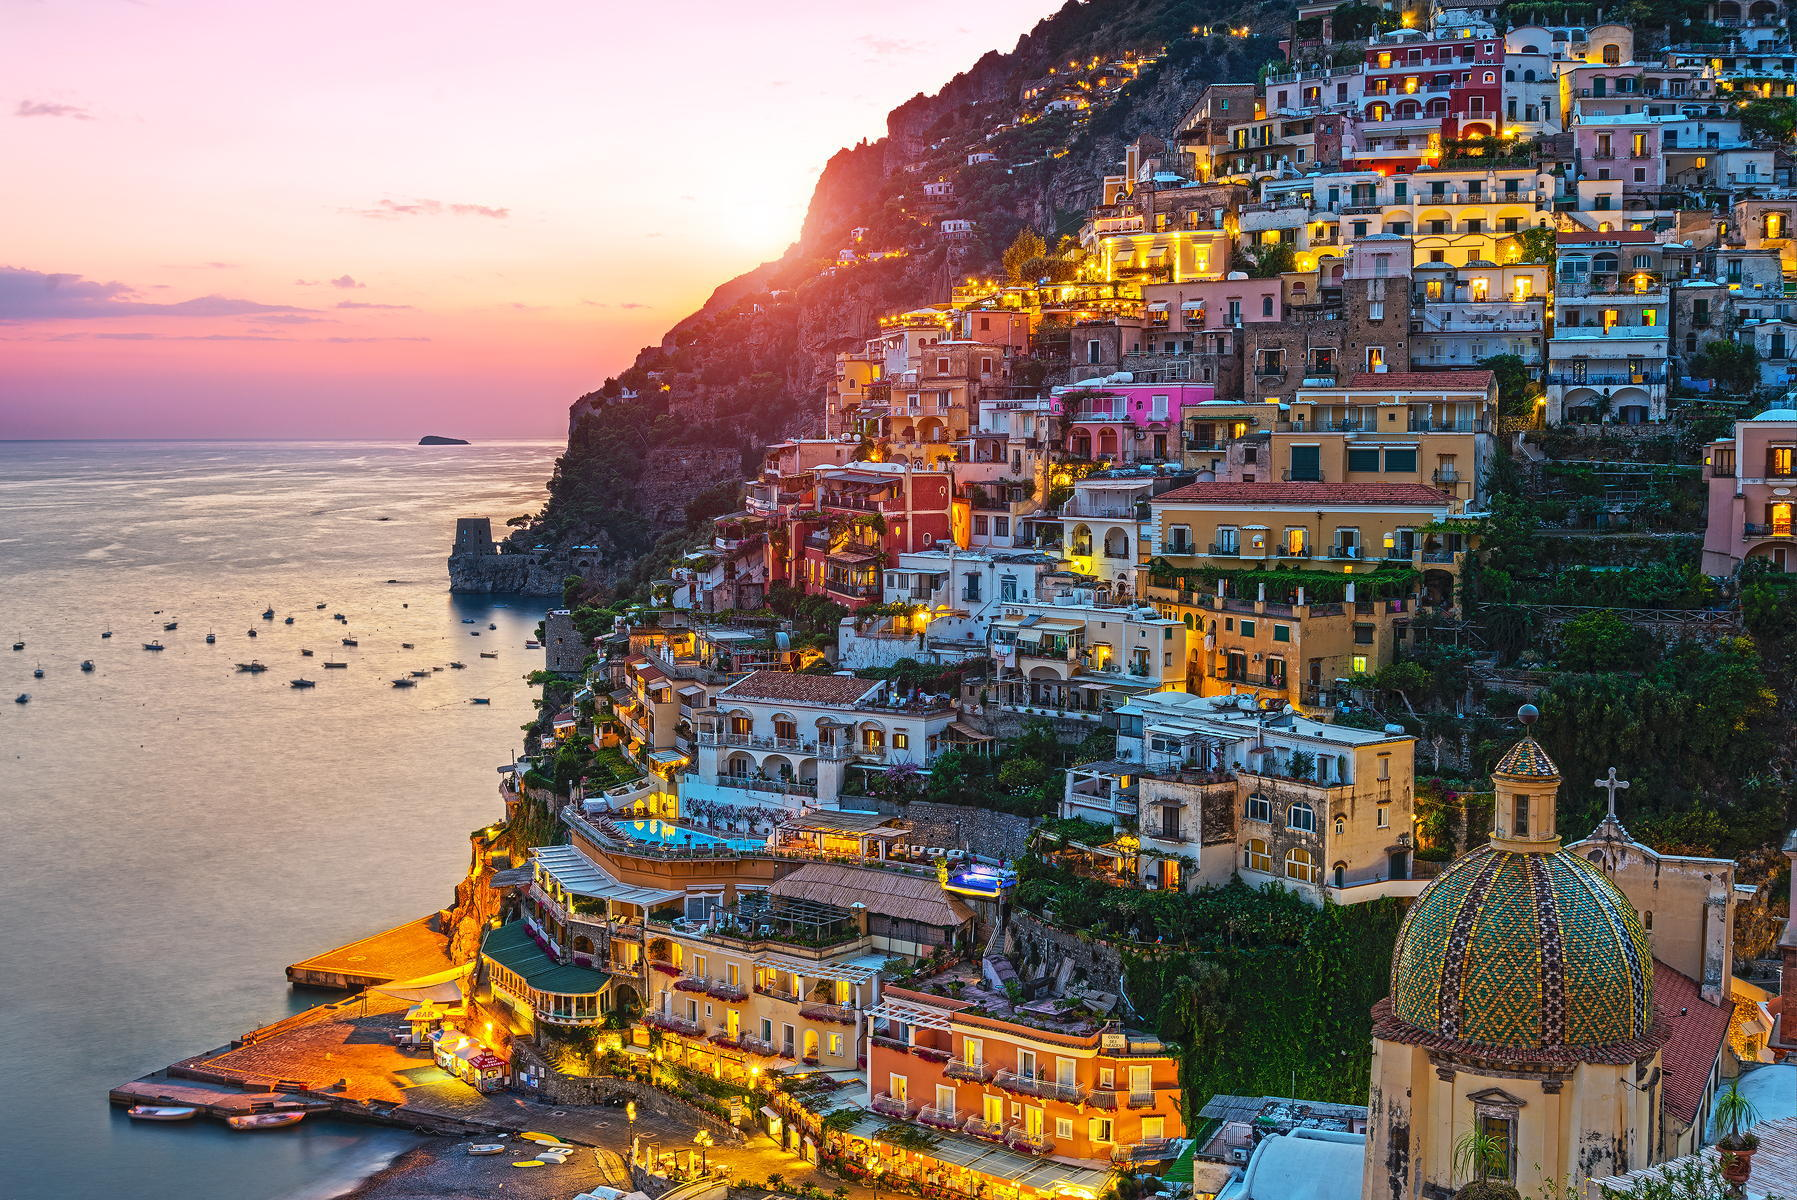 42 Positano Wallpaper On Wallpapersafari